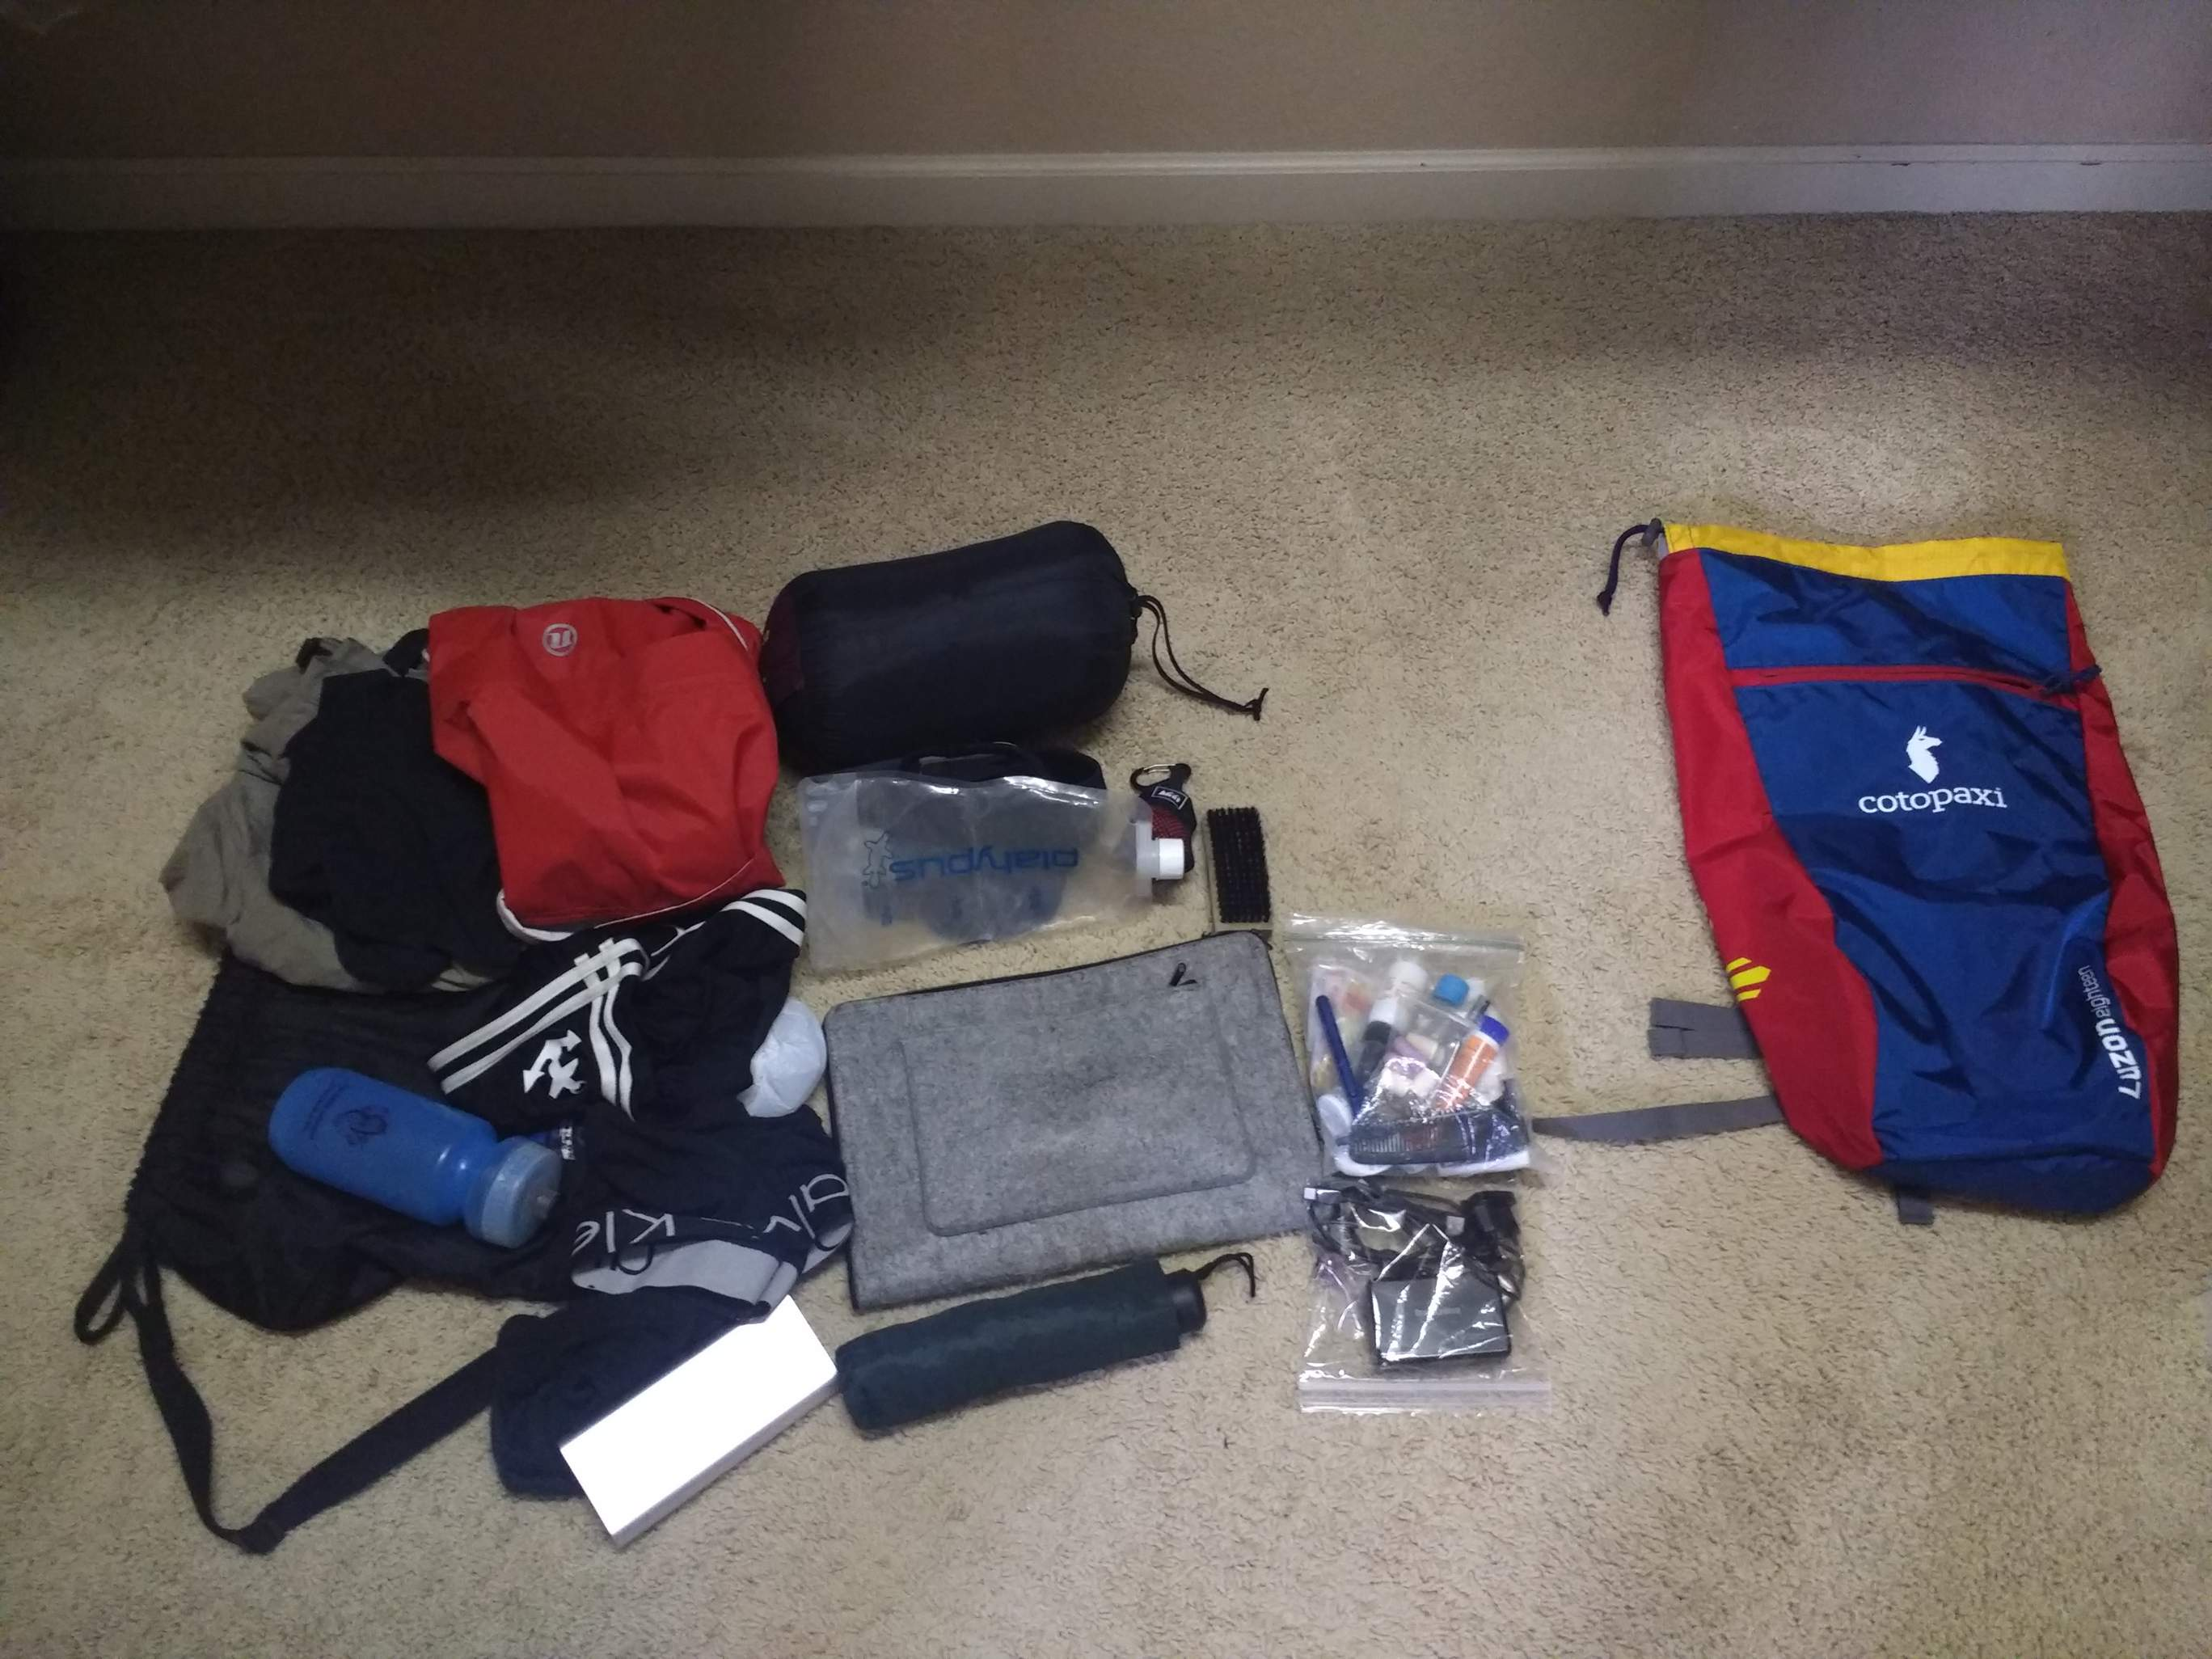 Camino Santiago Packing List Ultralight Travel My Packing List For 6 Weeks In Spain